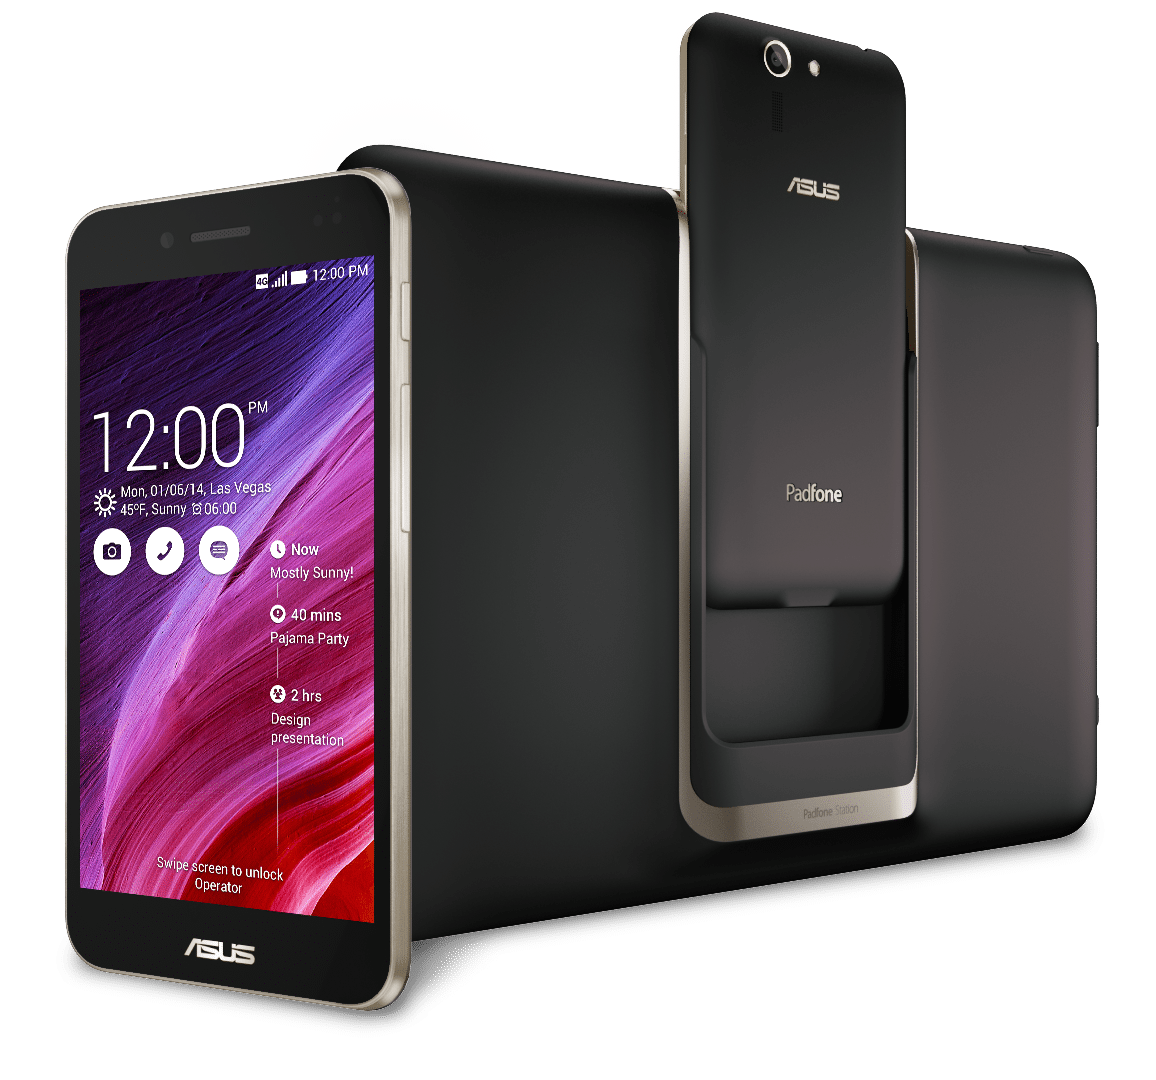 ASUS Padfone S Review - The Zenfone on steroids 23